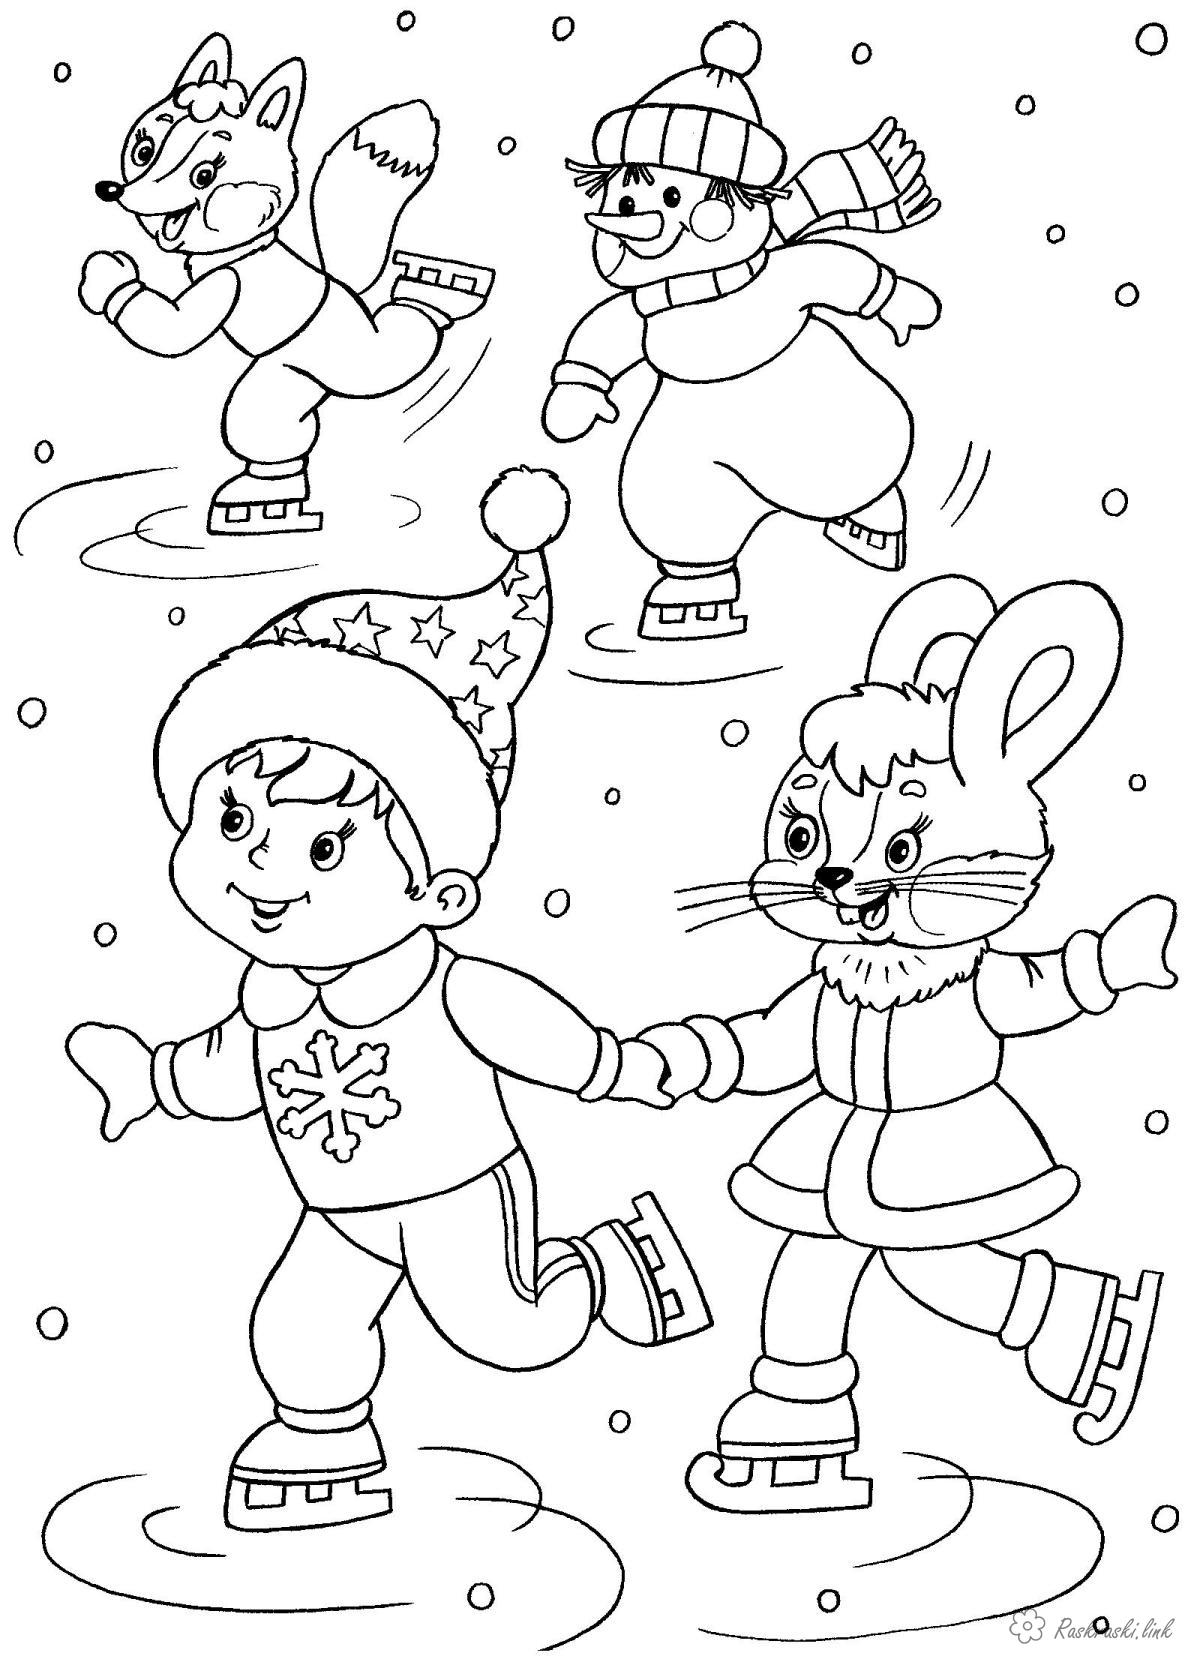 Coloring New Year Kids coloring pages Christmas, Santa Claus presents different podarochki kids